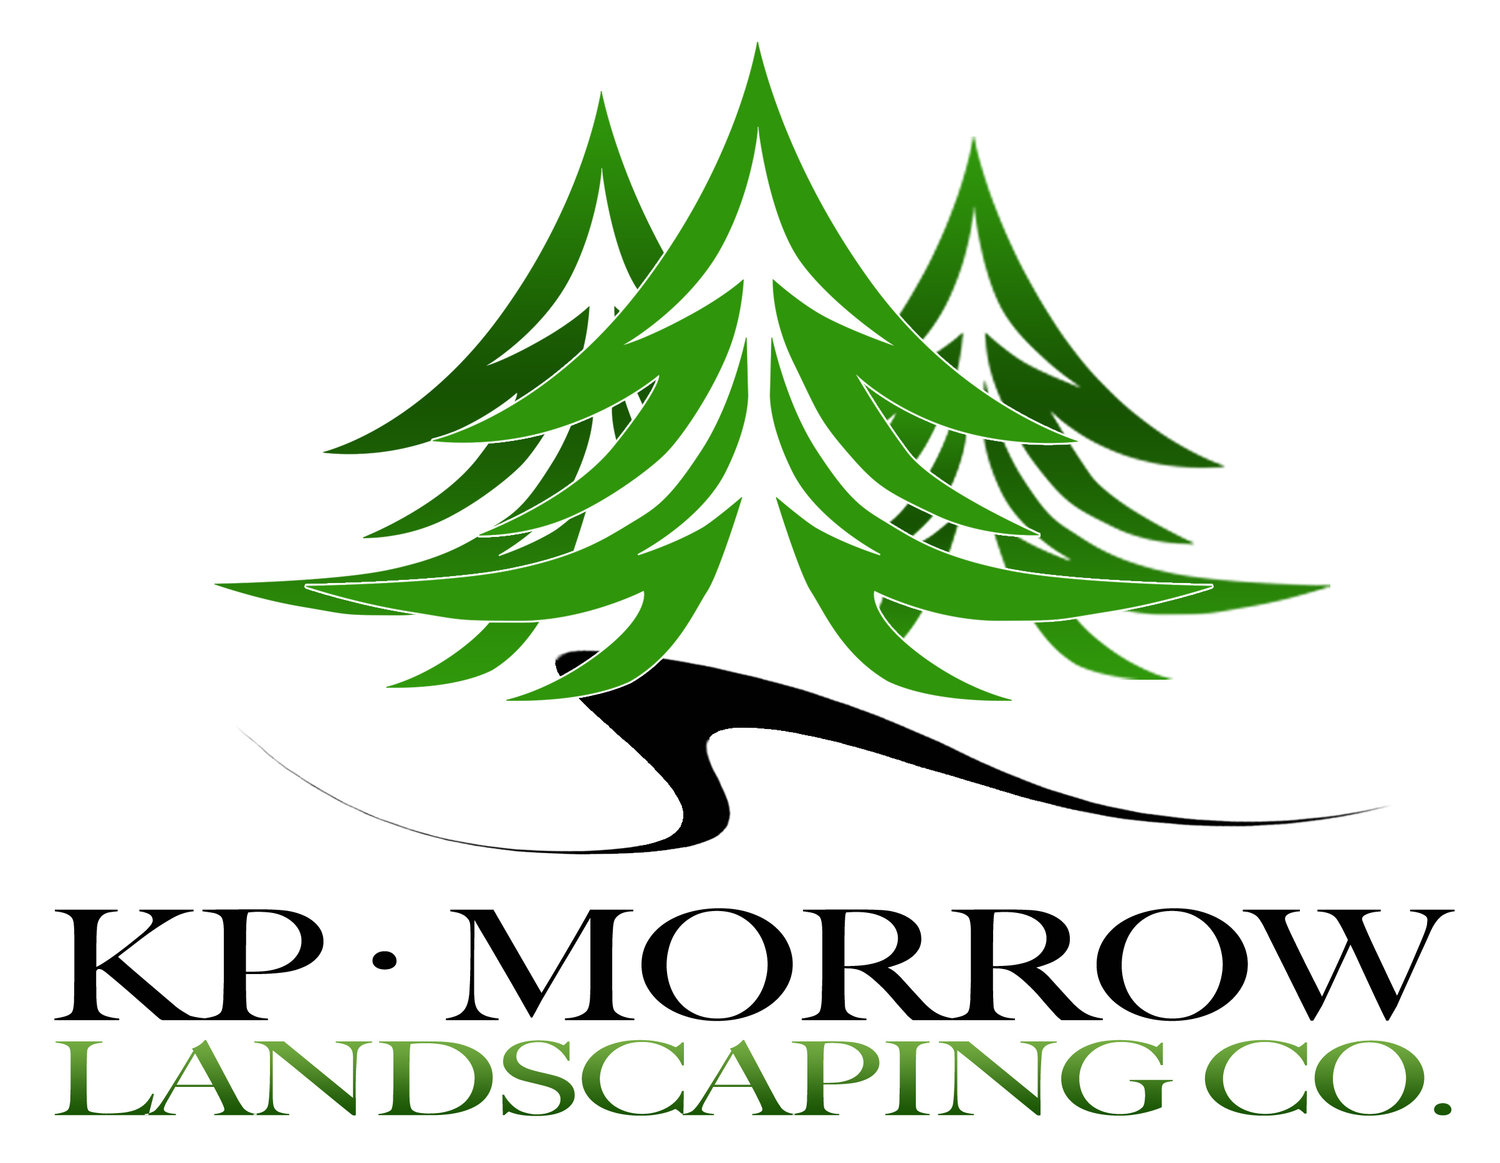 KP Morrow Landscaping Co